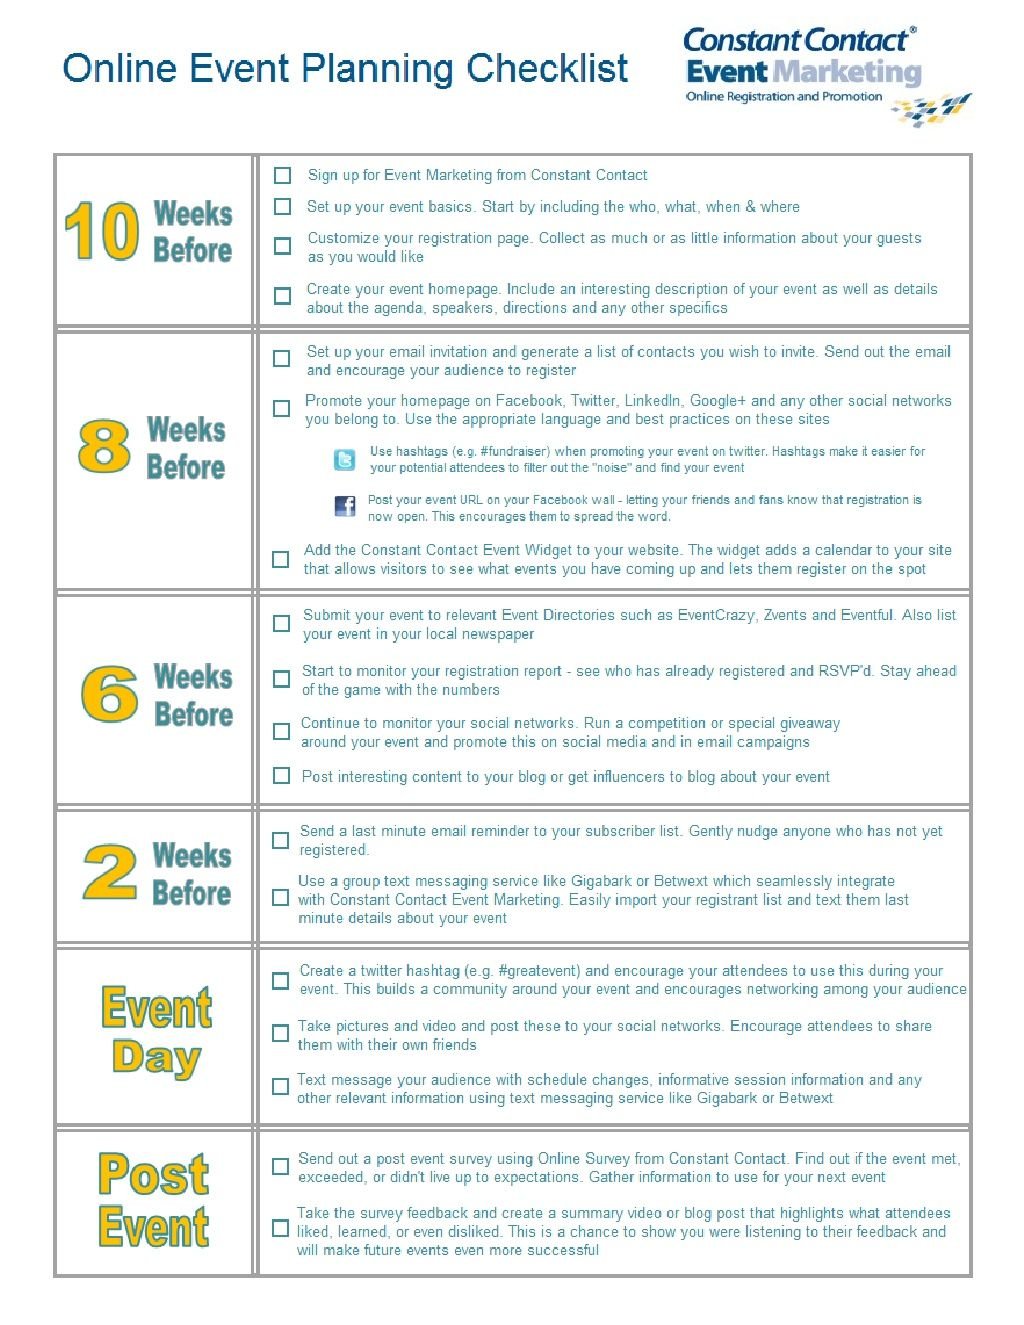 Online Event Planning Checklist By Constant Contact Event Marketing Via Slideshare